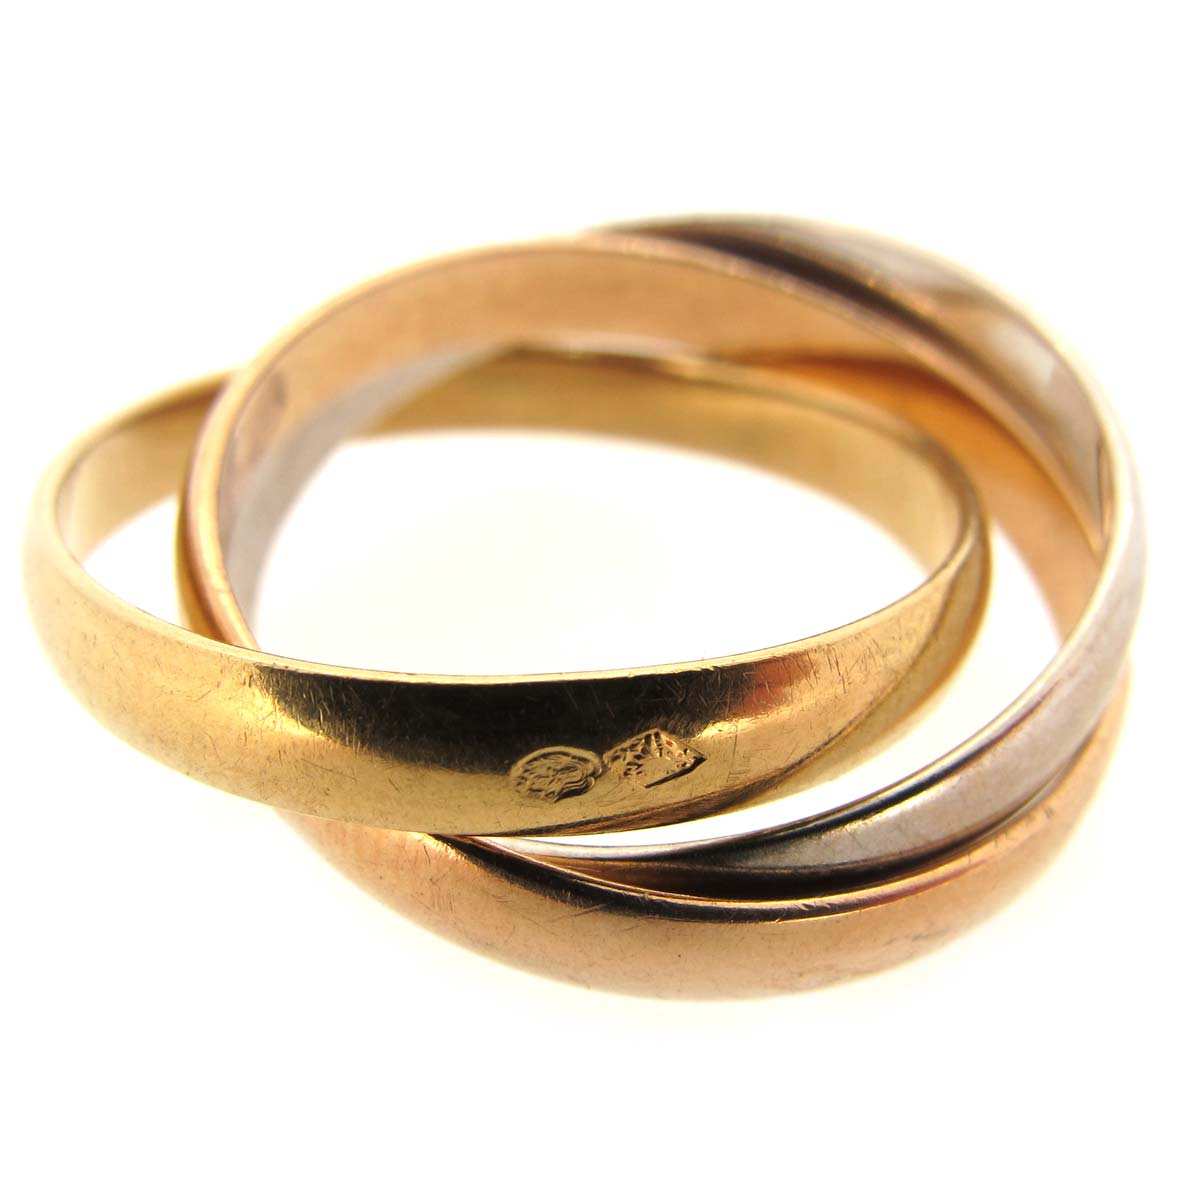 18ct gold Russian wedding ring